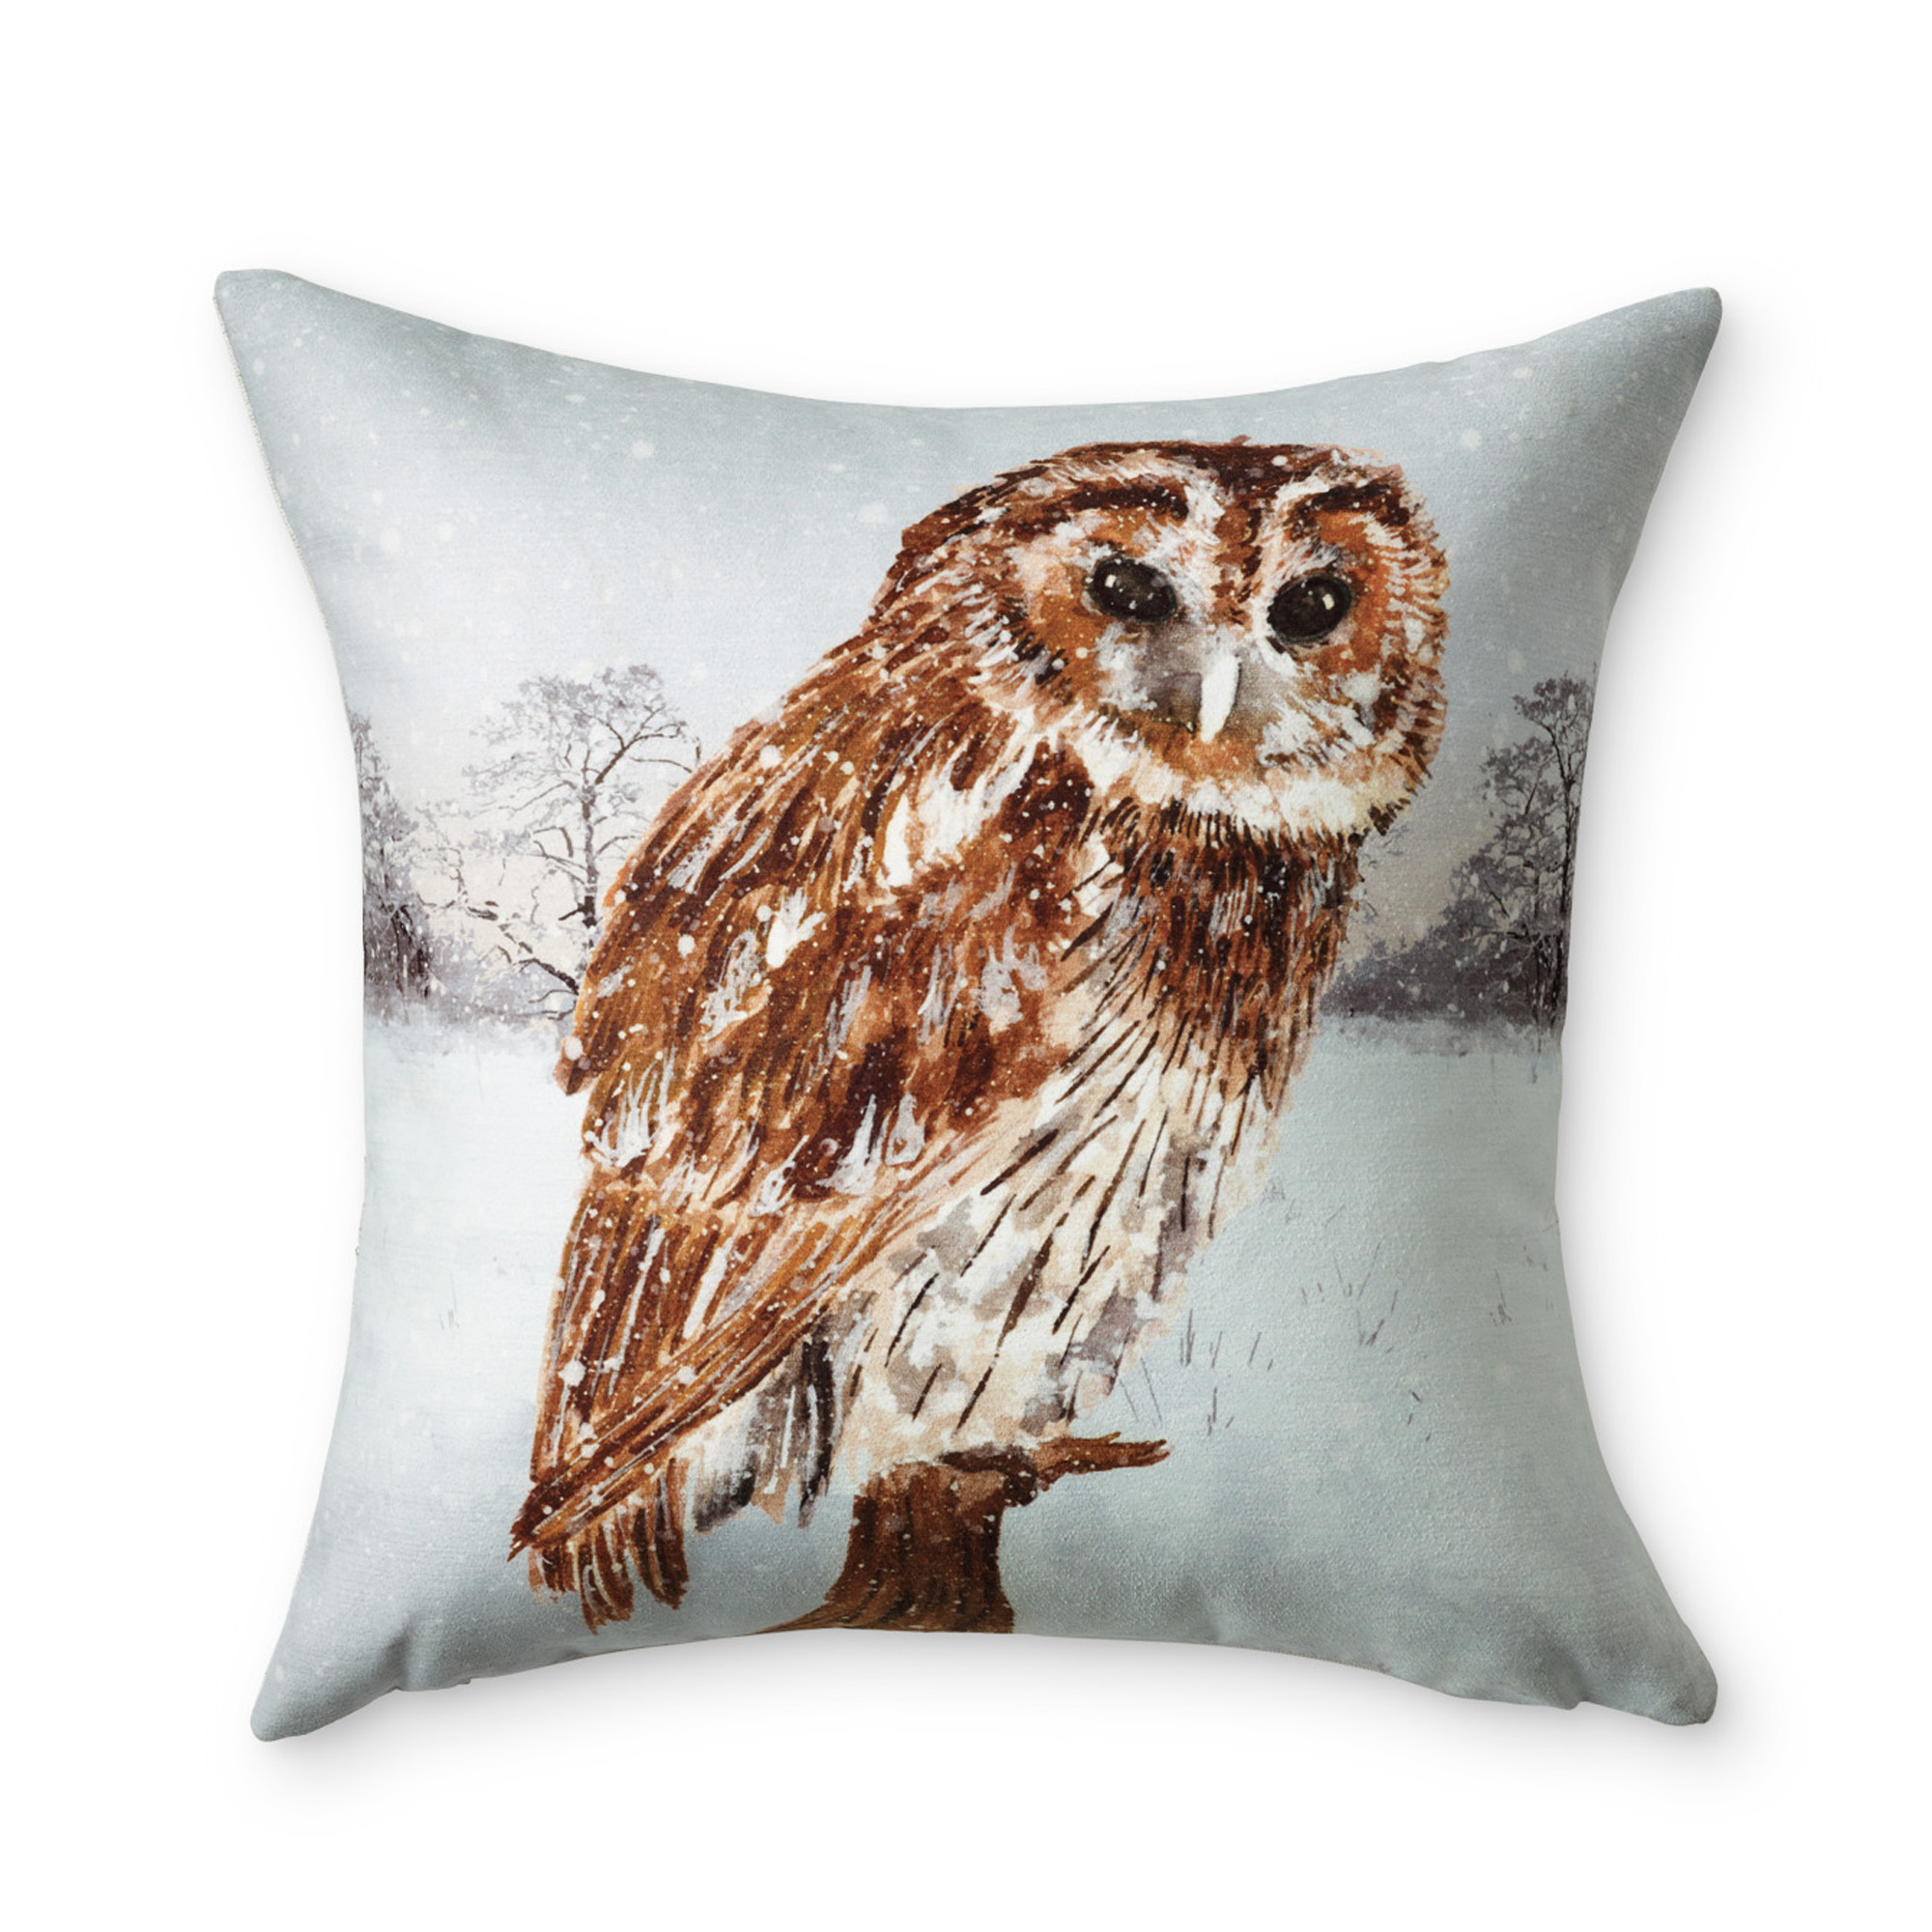 Snowy Woods Snow Owl Pillow